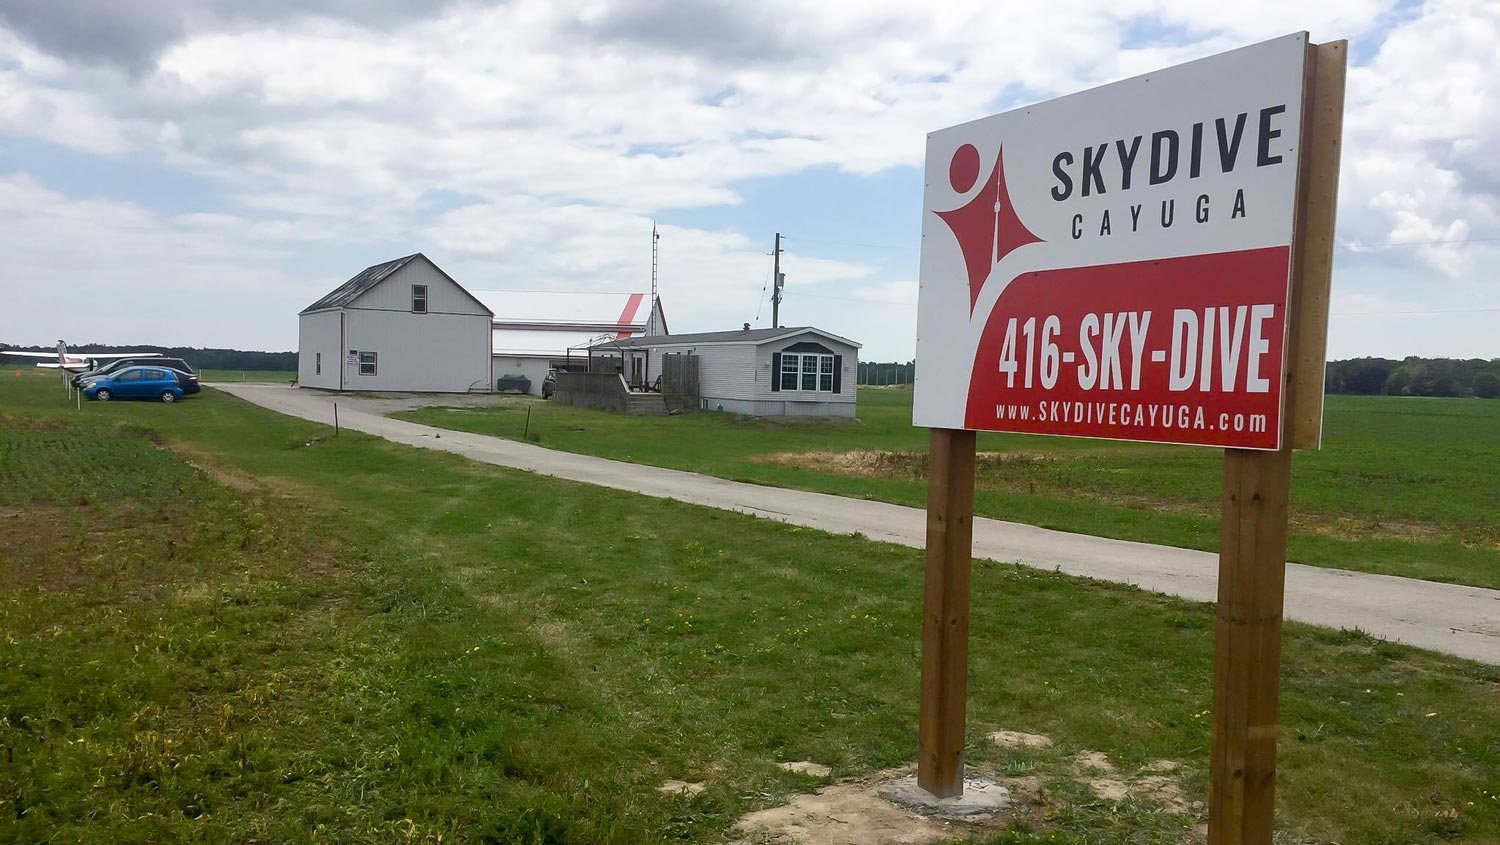 Skydive Cayuga Road Sign